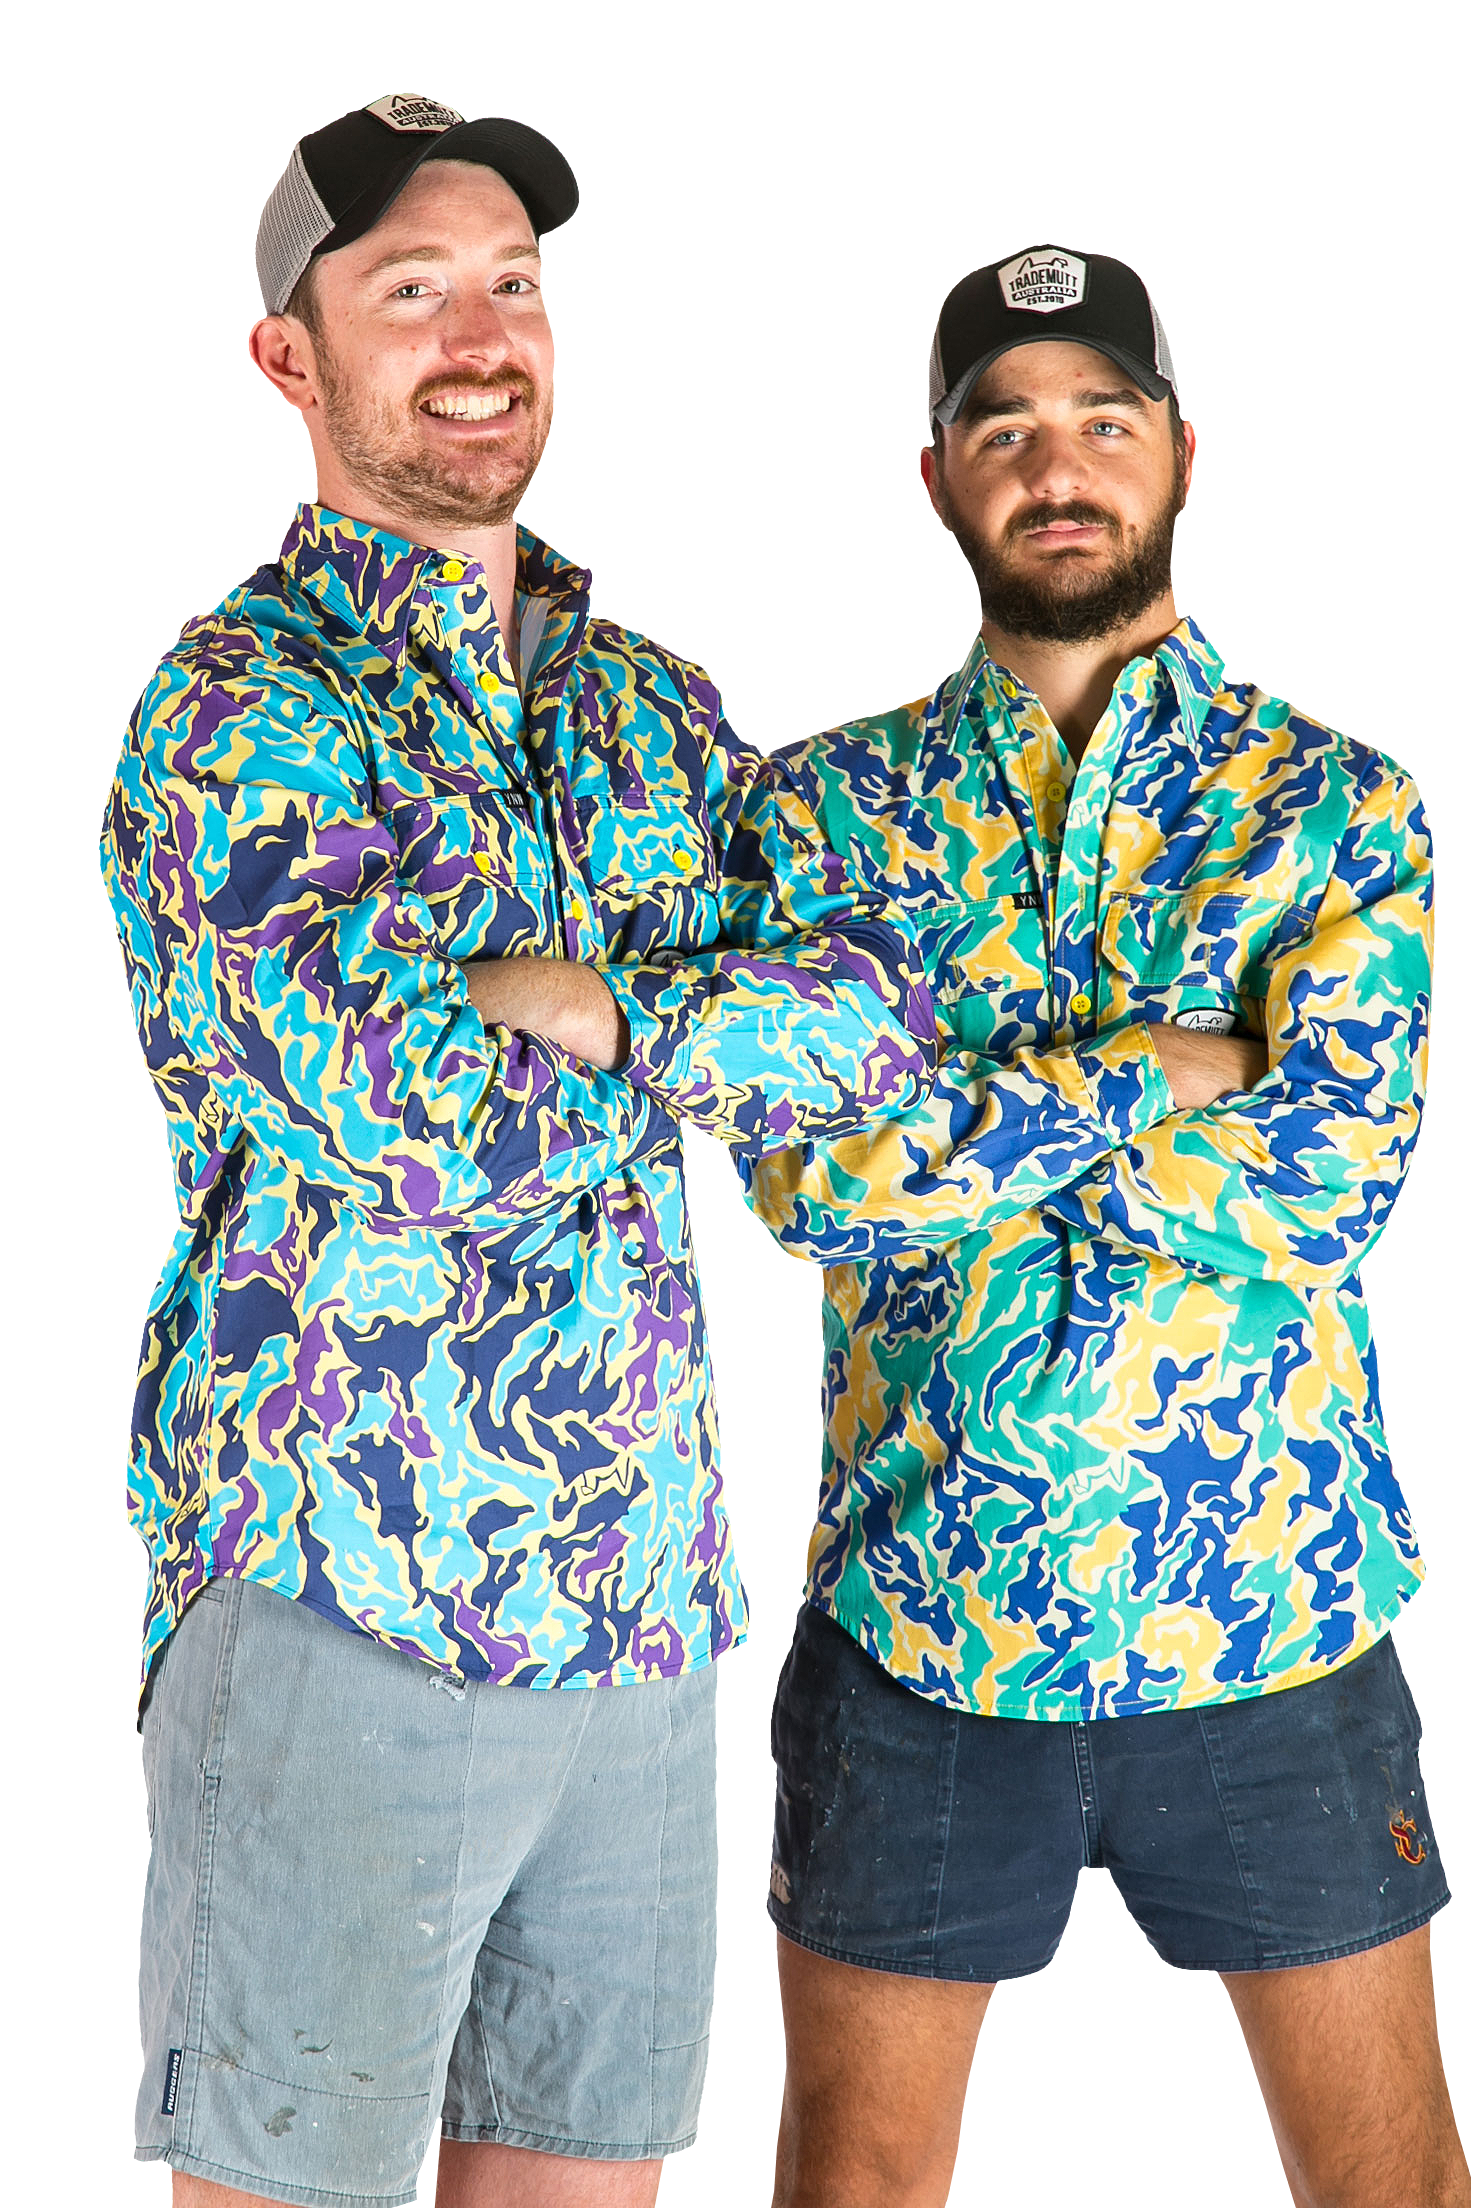 Dan Allen and Ed Ross modelling their awesome shirts.